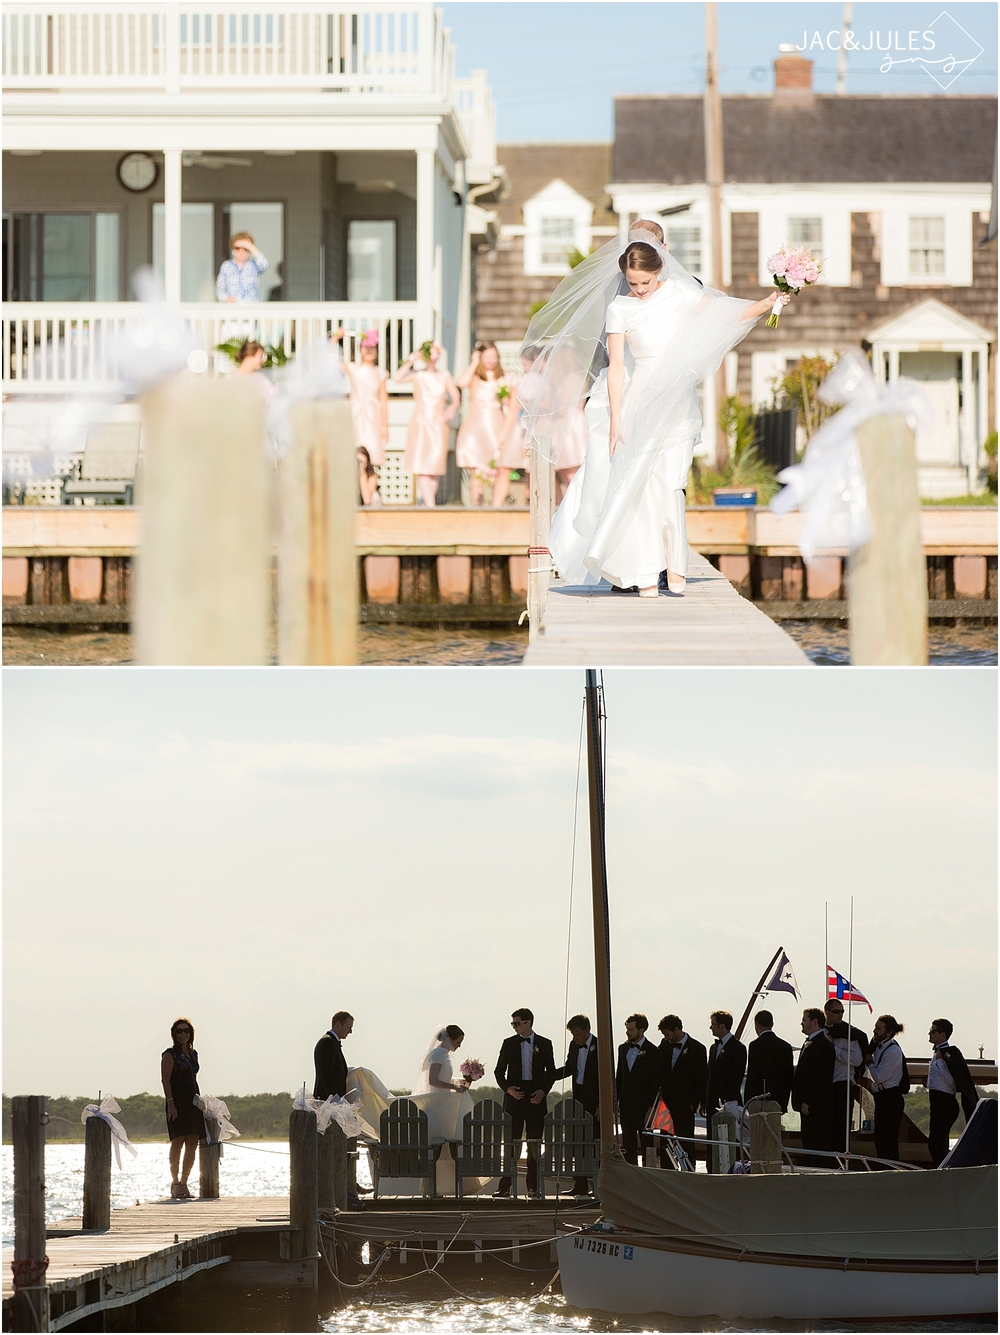 jacnjules photograph a beautiful beach wedding in mantoloking nj